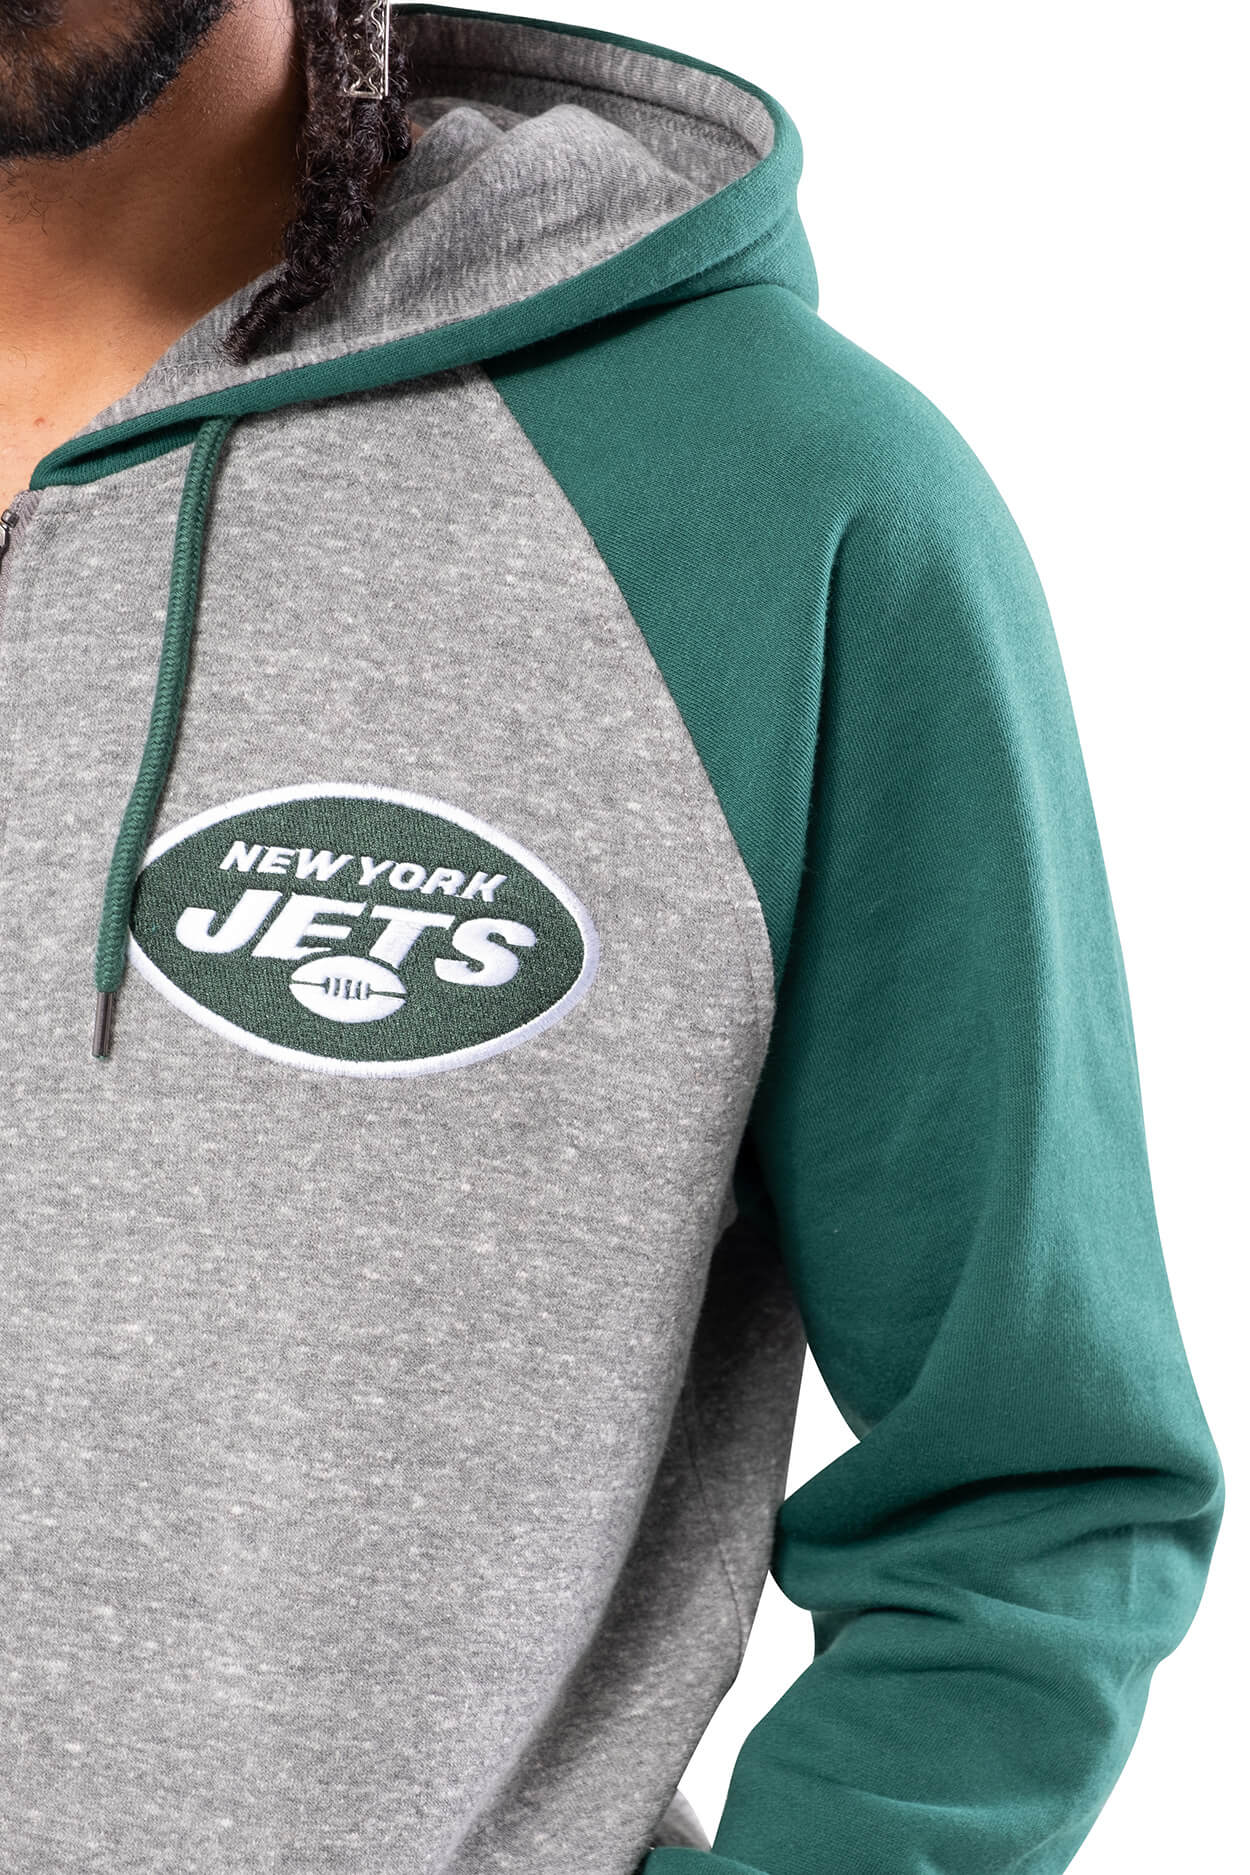 NFL New York Jets Men's Full Zip Hoodie|New York Jets